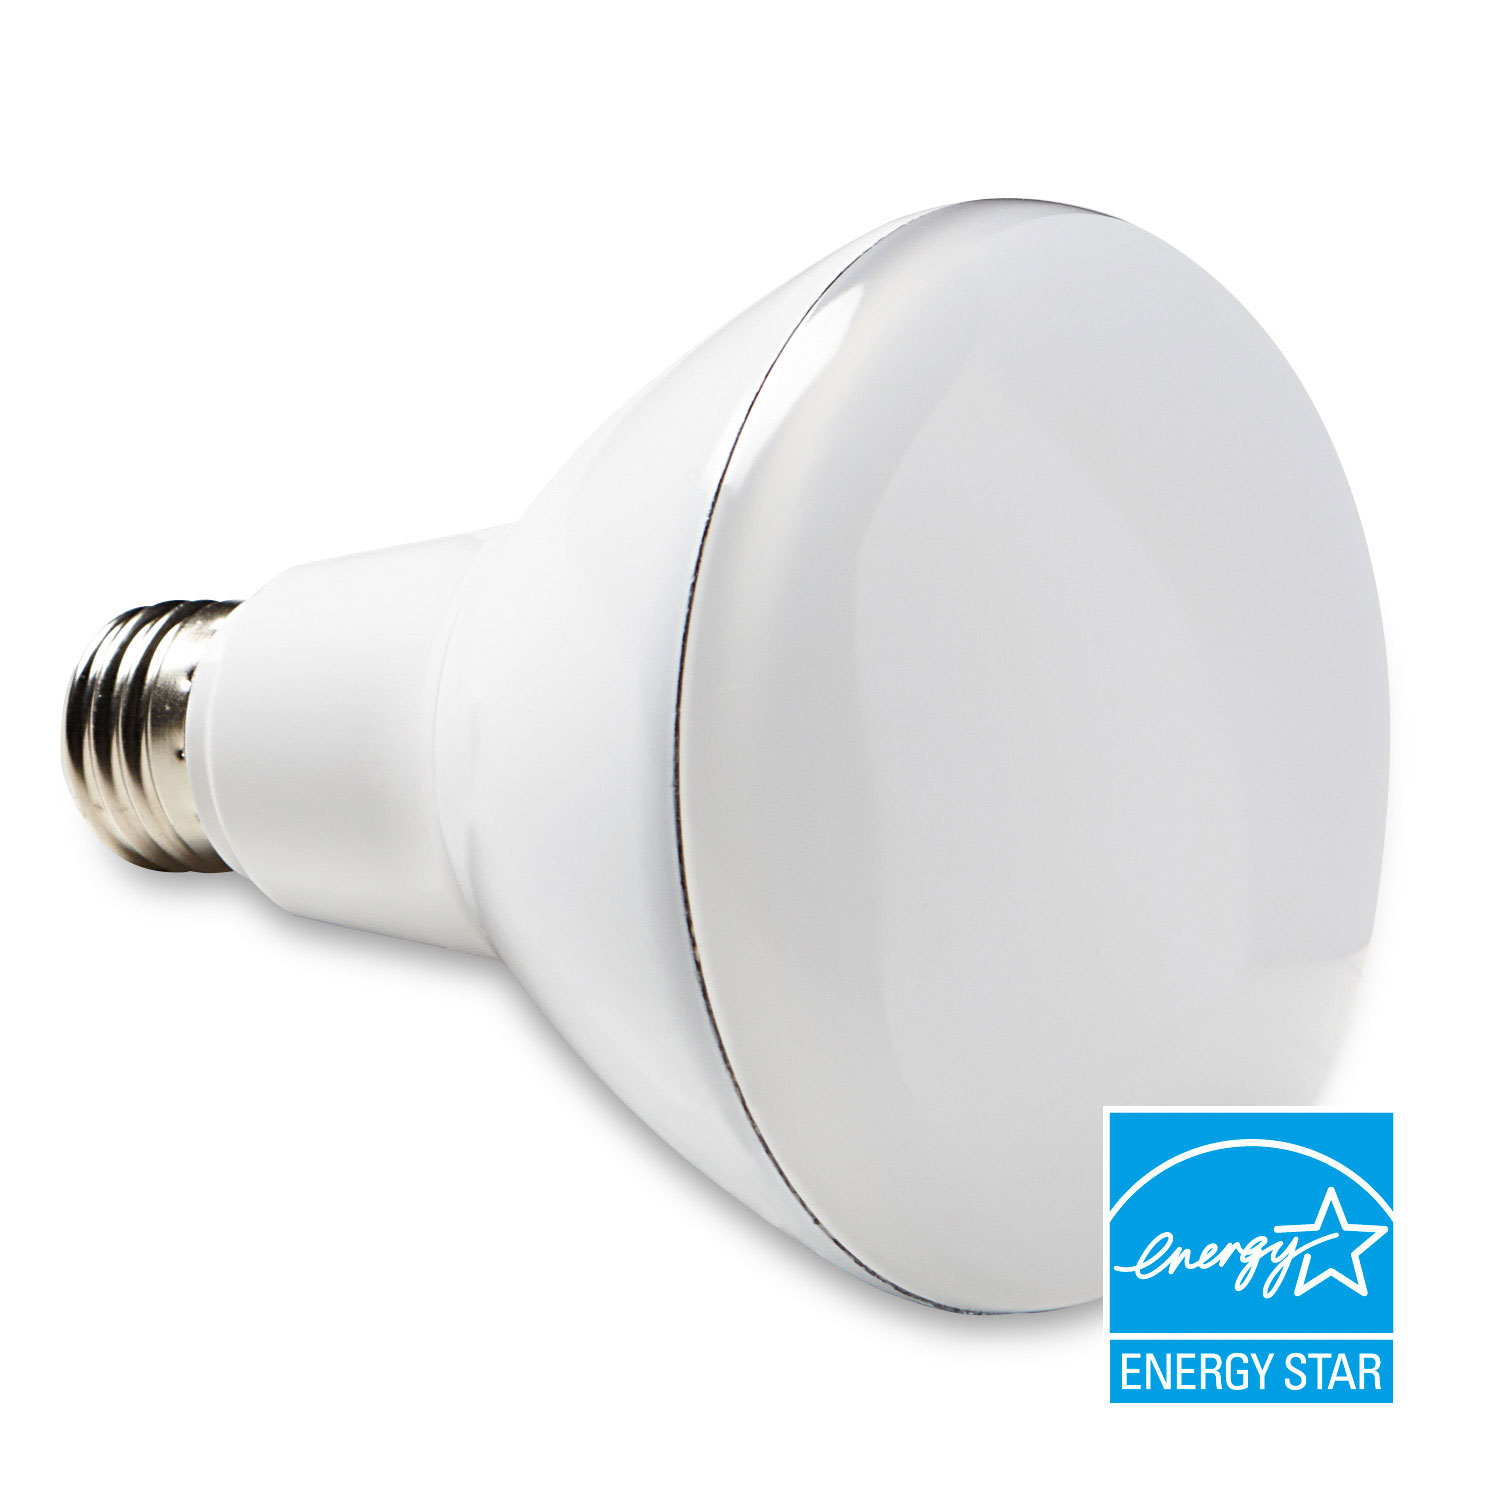 Verbatim, LED, BR30 Warm White, Dimmable, 989838W, 3000K, R30-L650-C30-R